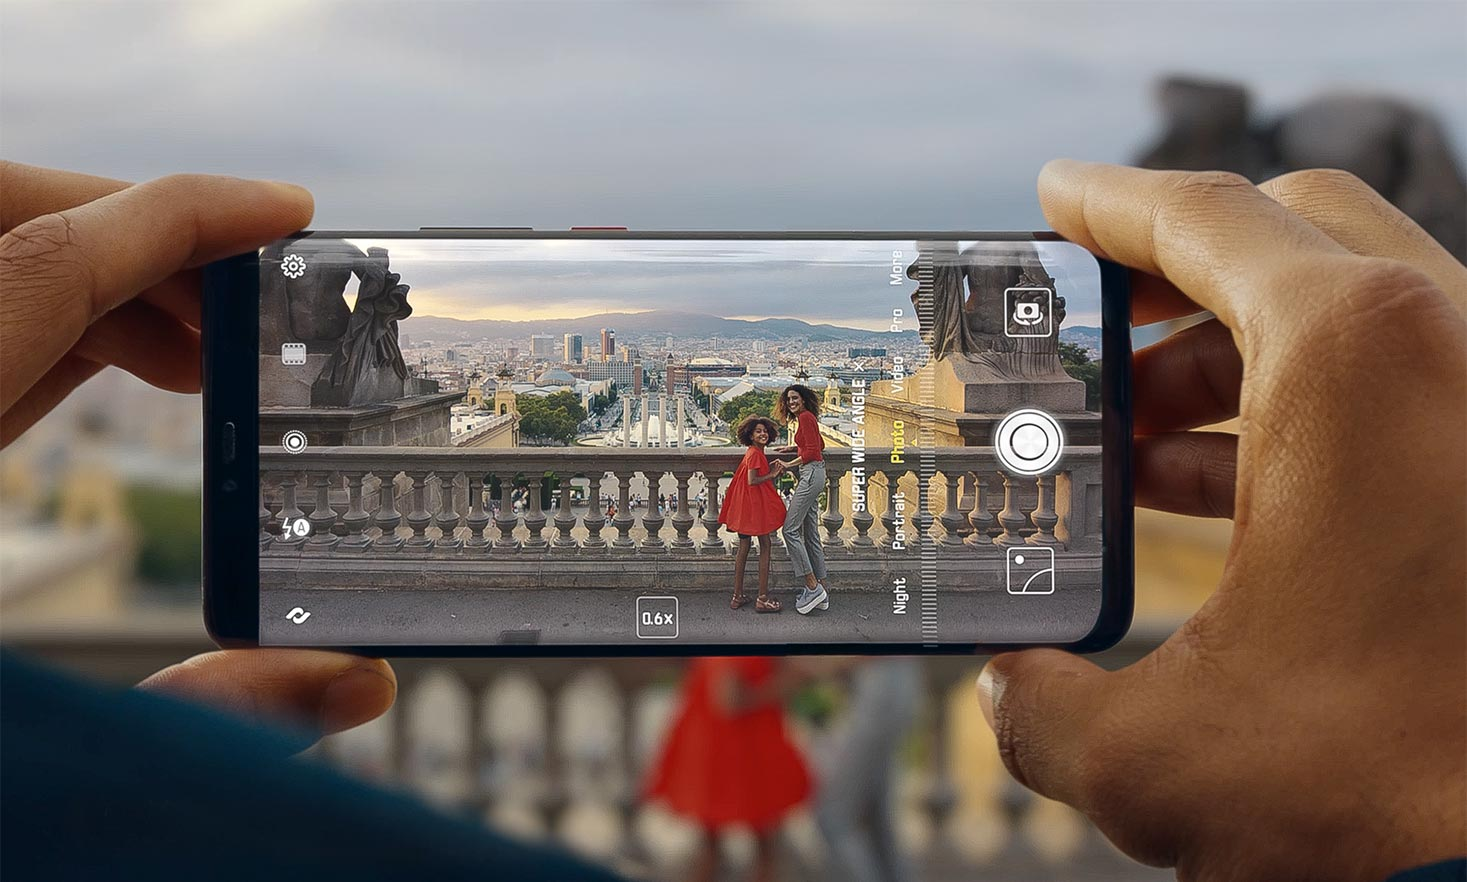 Image from huawei.com